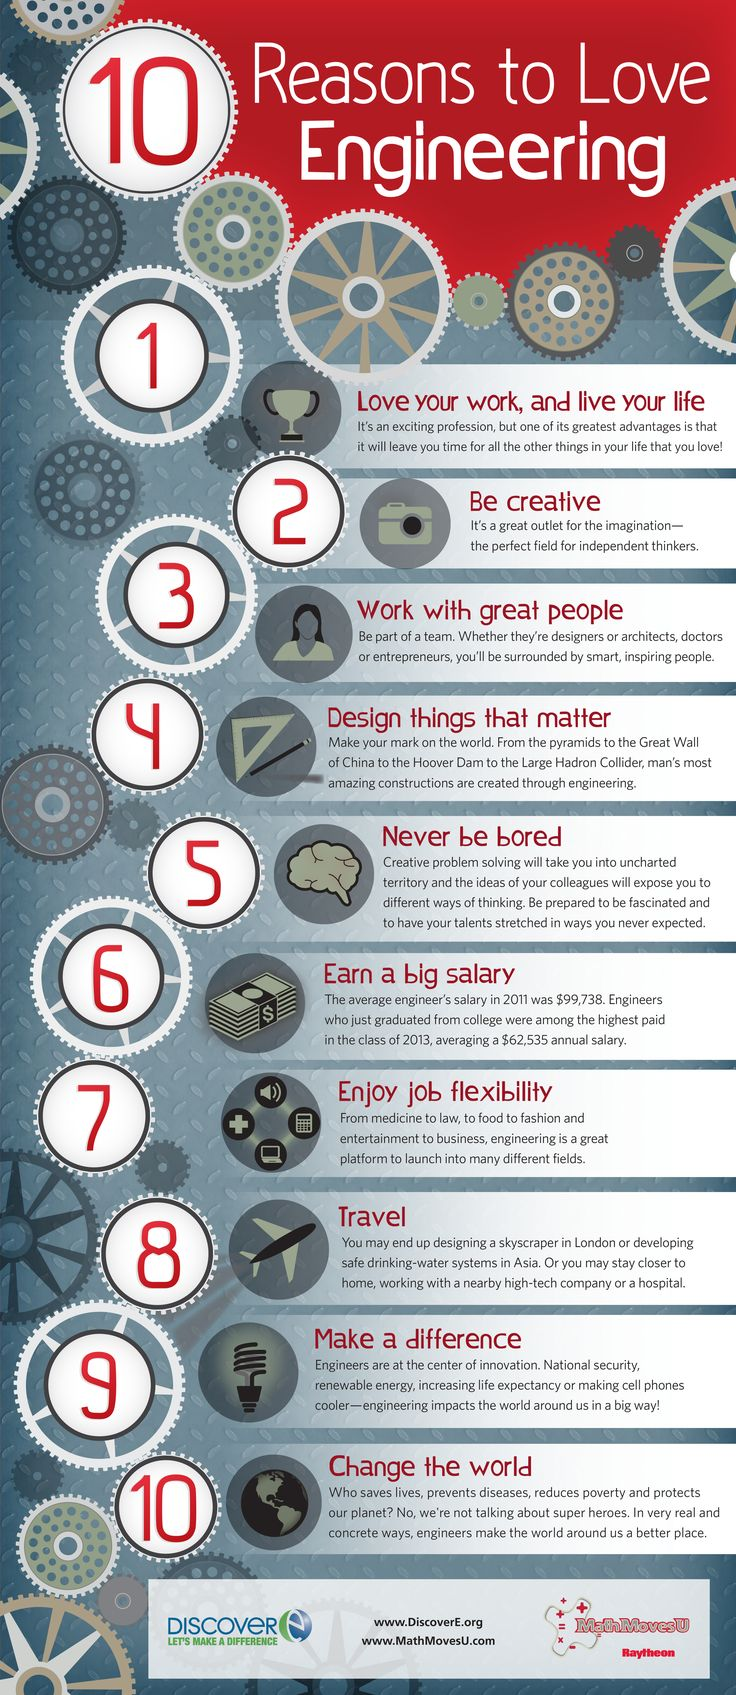 10 reasons to love #engineering